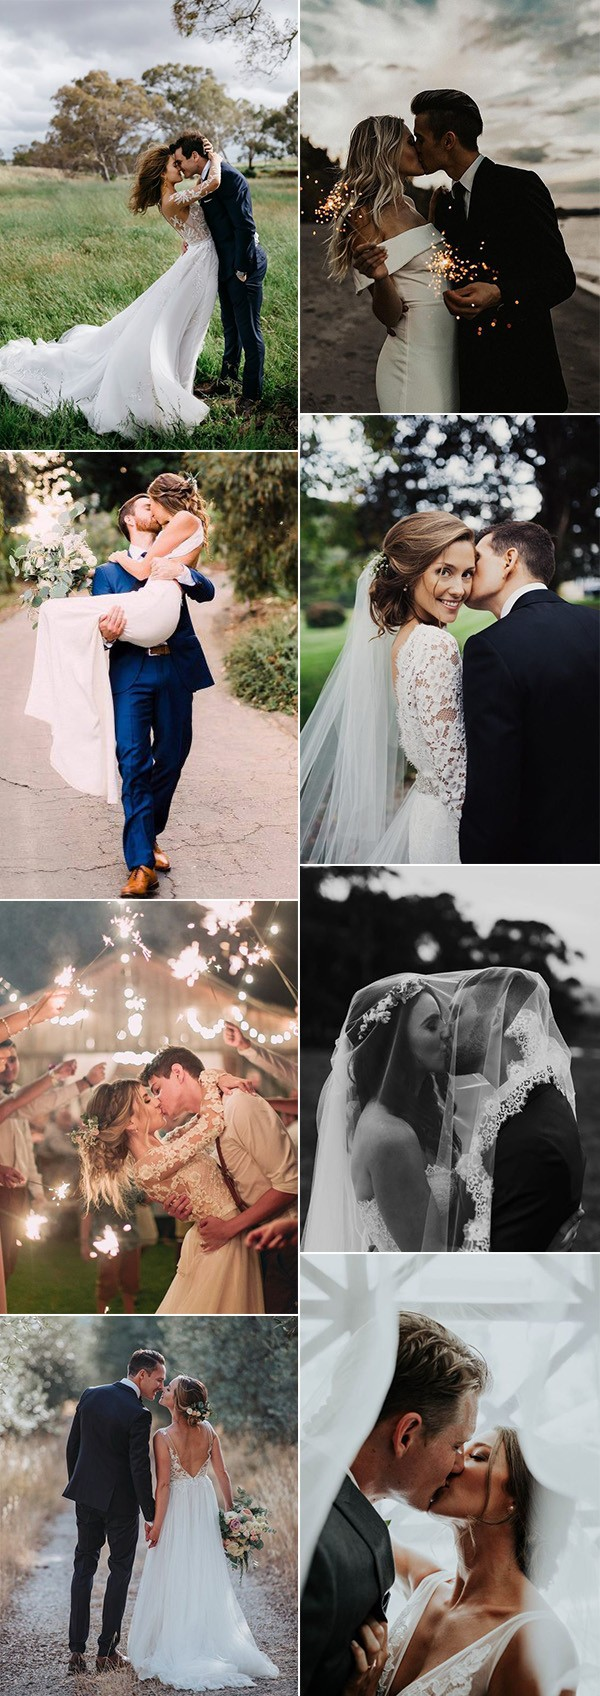 bride and groom kisses wedding photo ideas